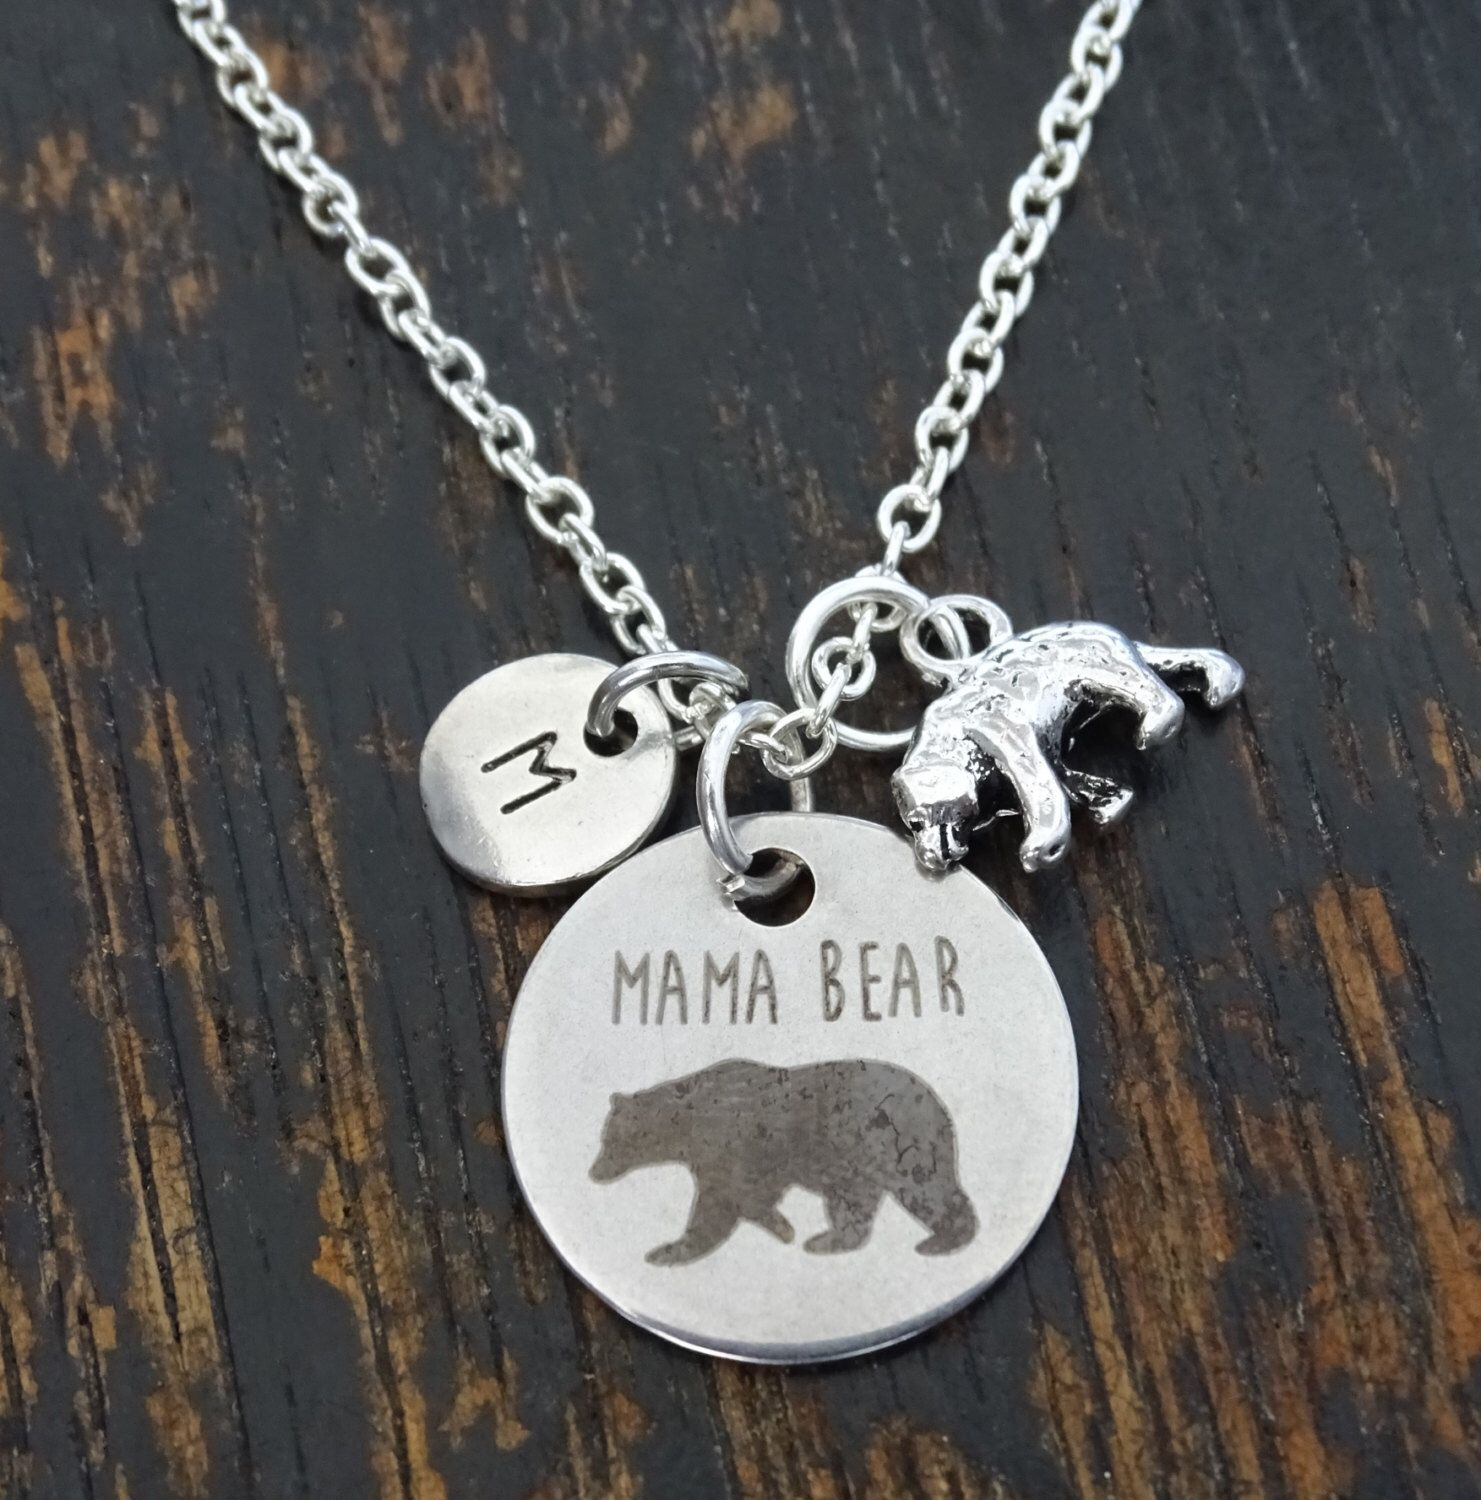 image cubs product bear products necklace trendy boutique local mama my turtle